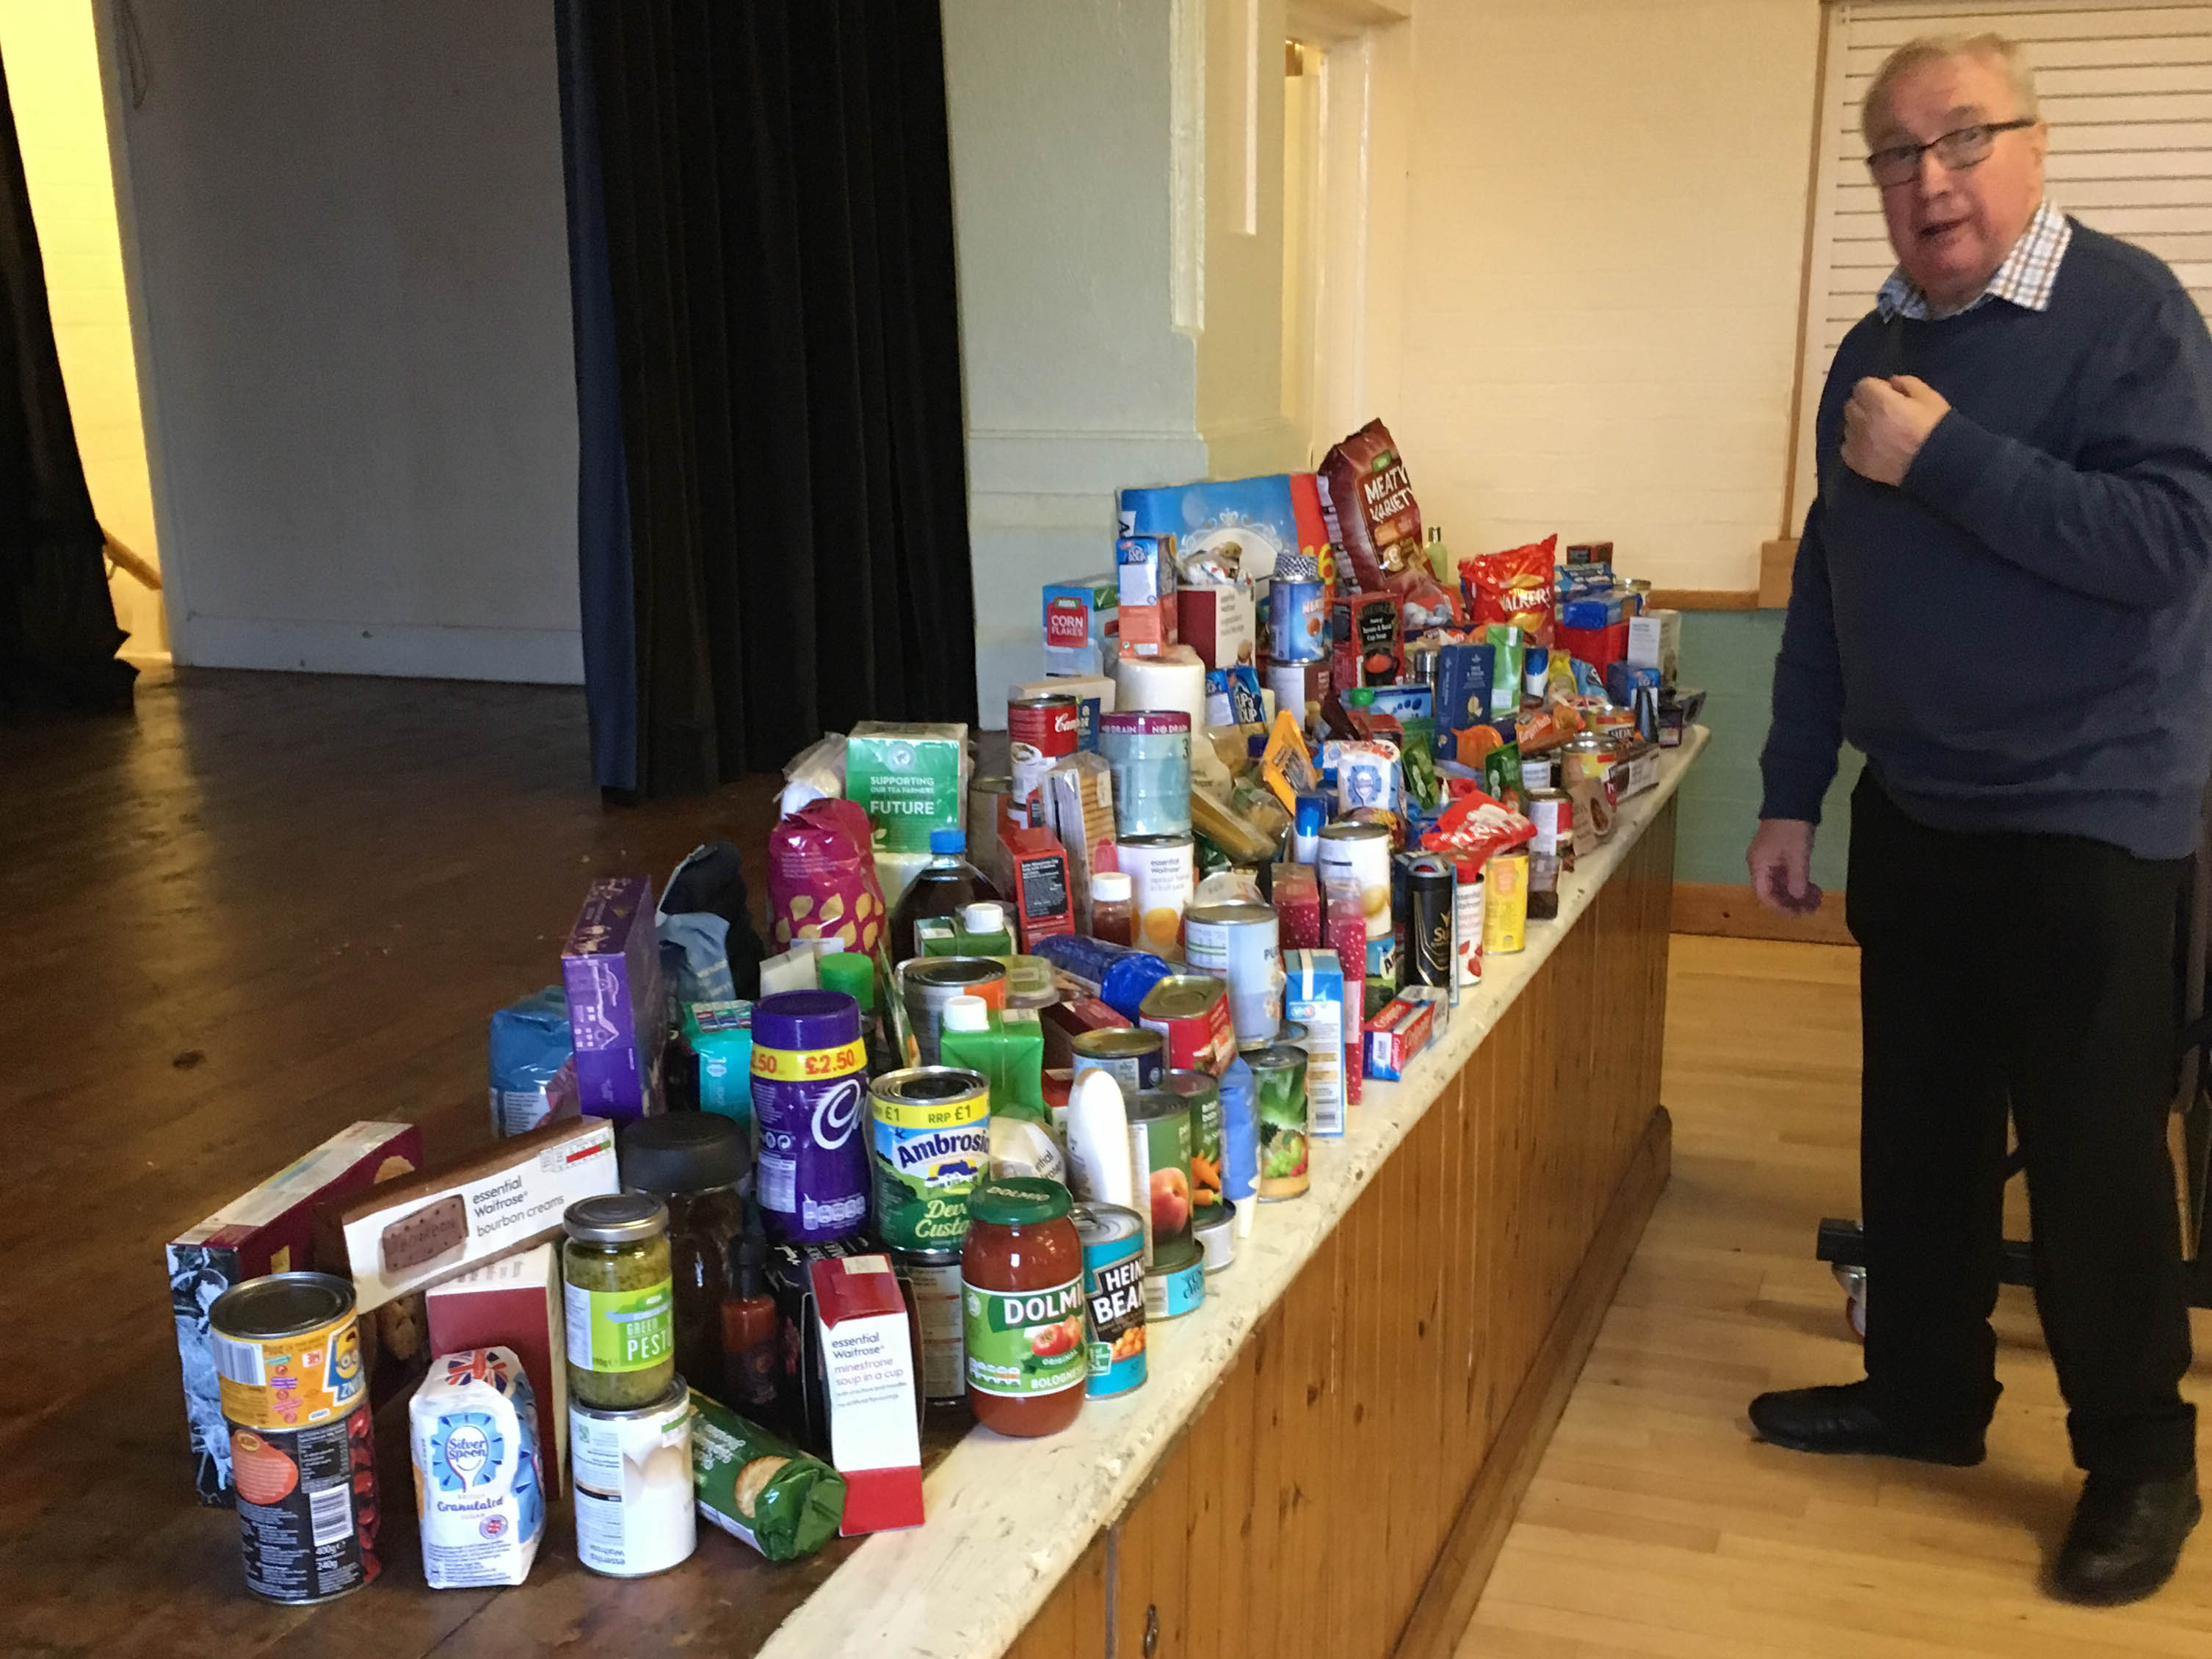 IMG 1558 Gordon Hewer with goods collected Advent Service 1st Dec 2018-1558